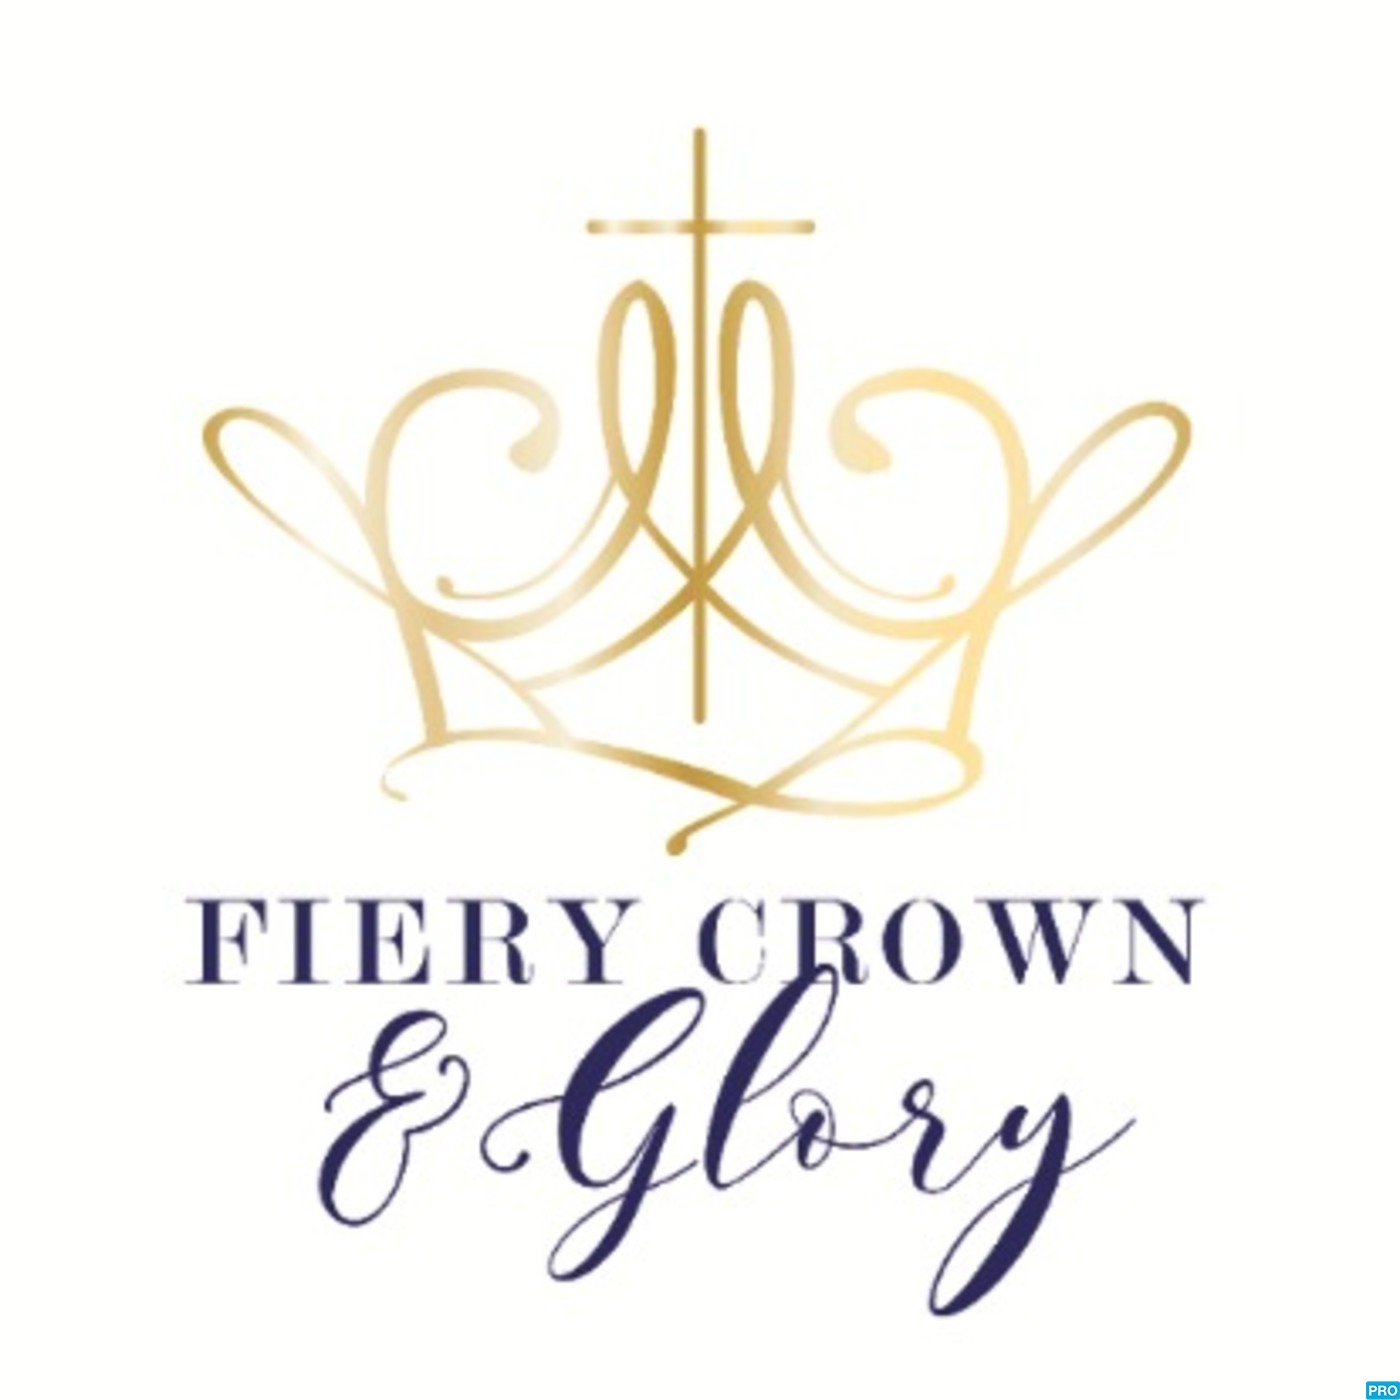 Fiery Crown and Glory